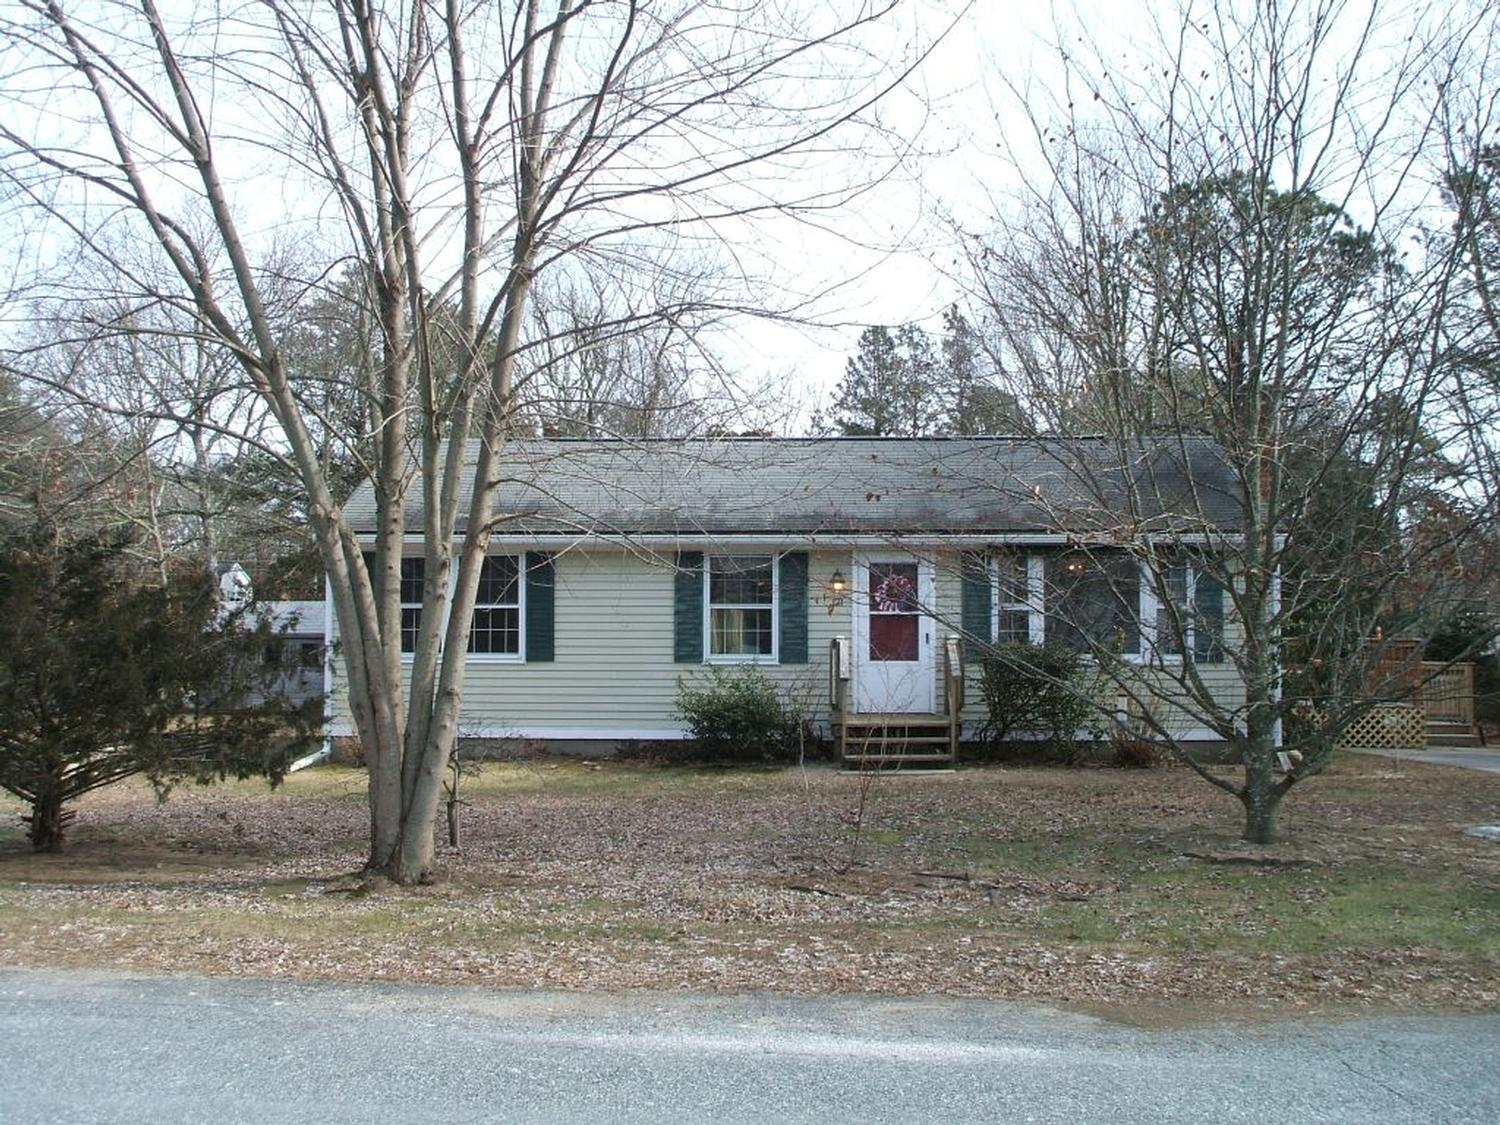 Photo of real estate for sale located at 121 Balsam Road South Kingstown, RI 02879